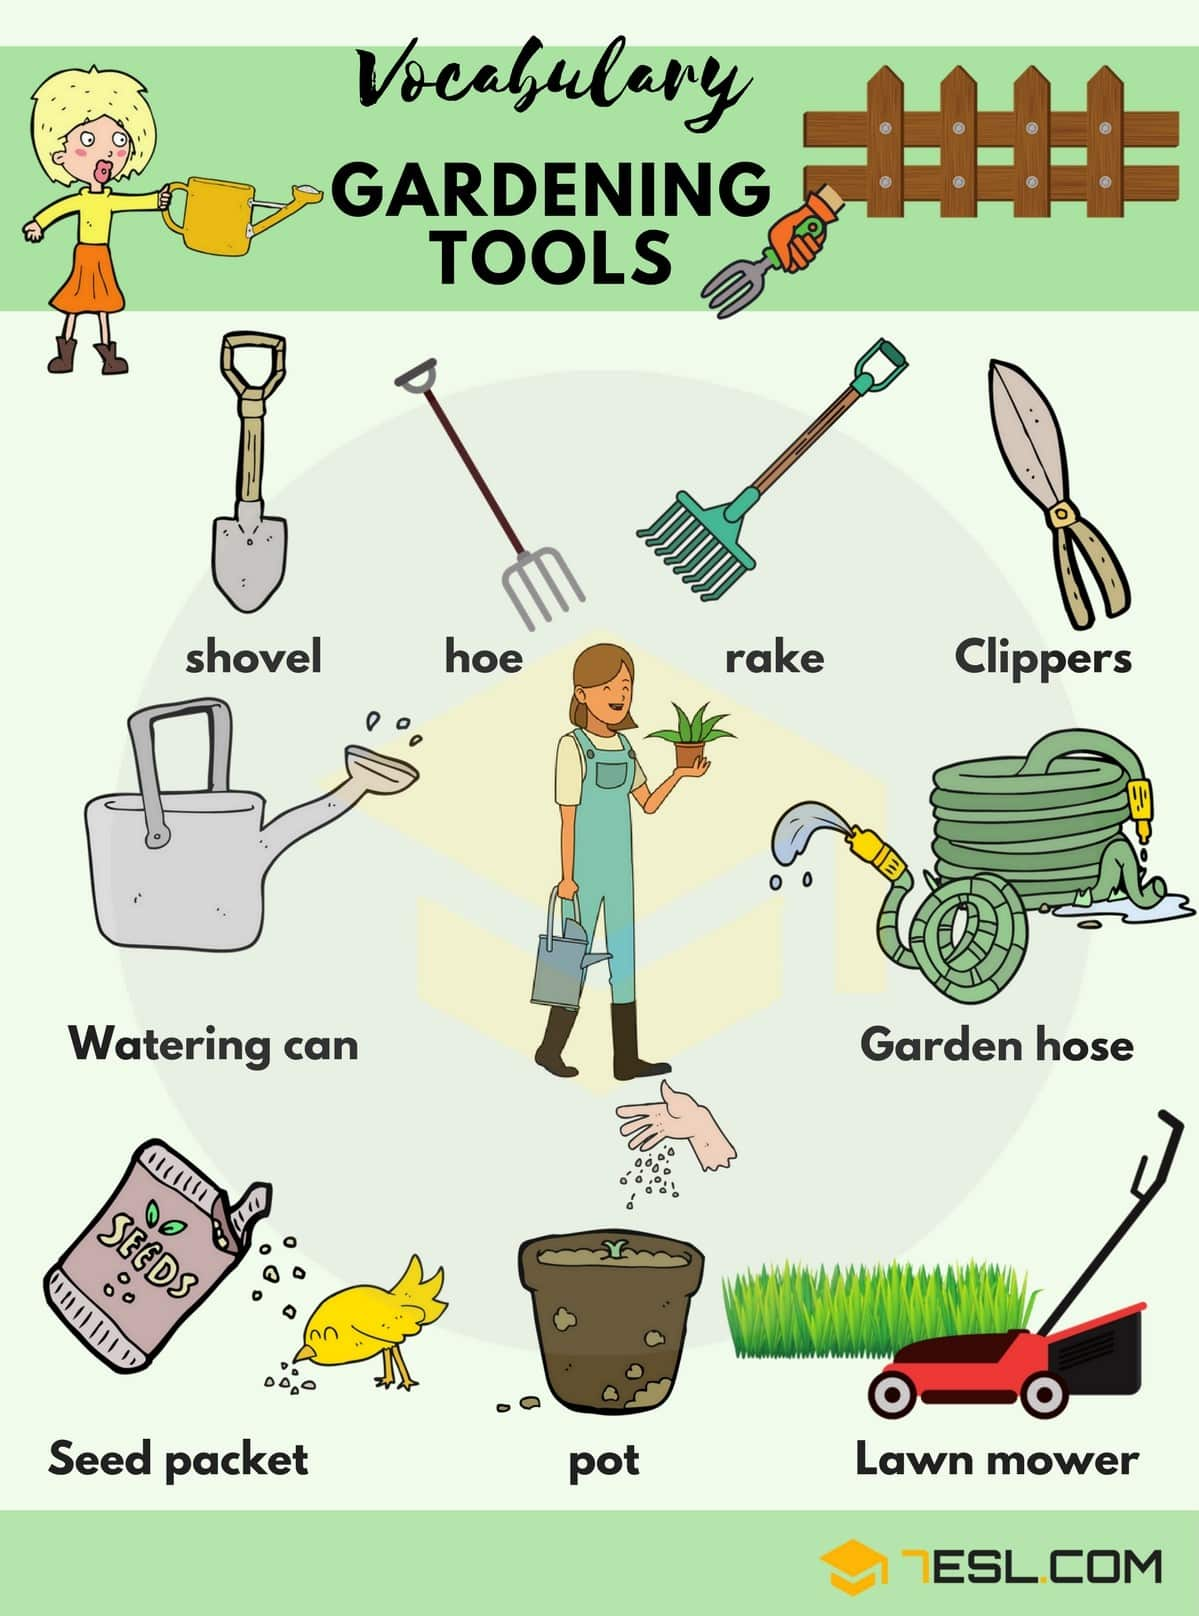 Tools and Equipment Vocabulary in English 15